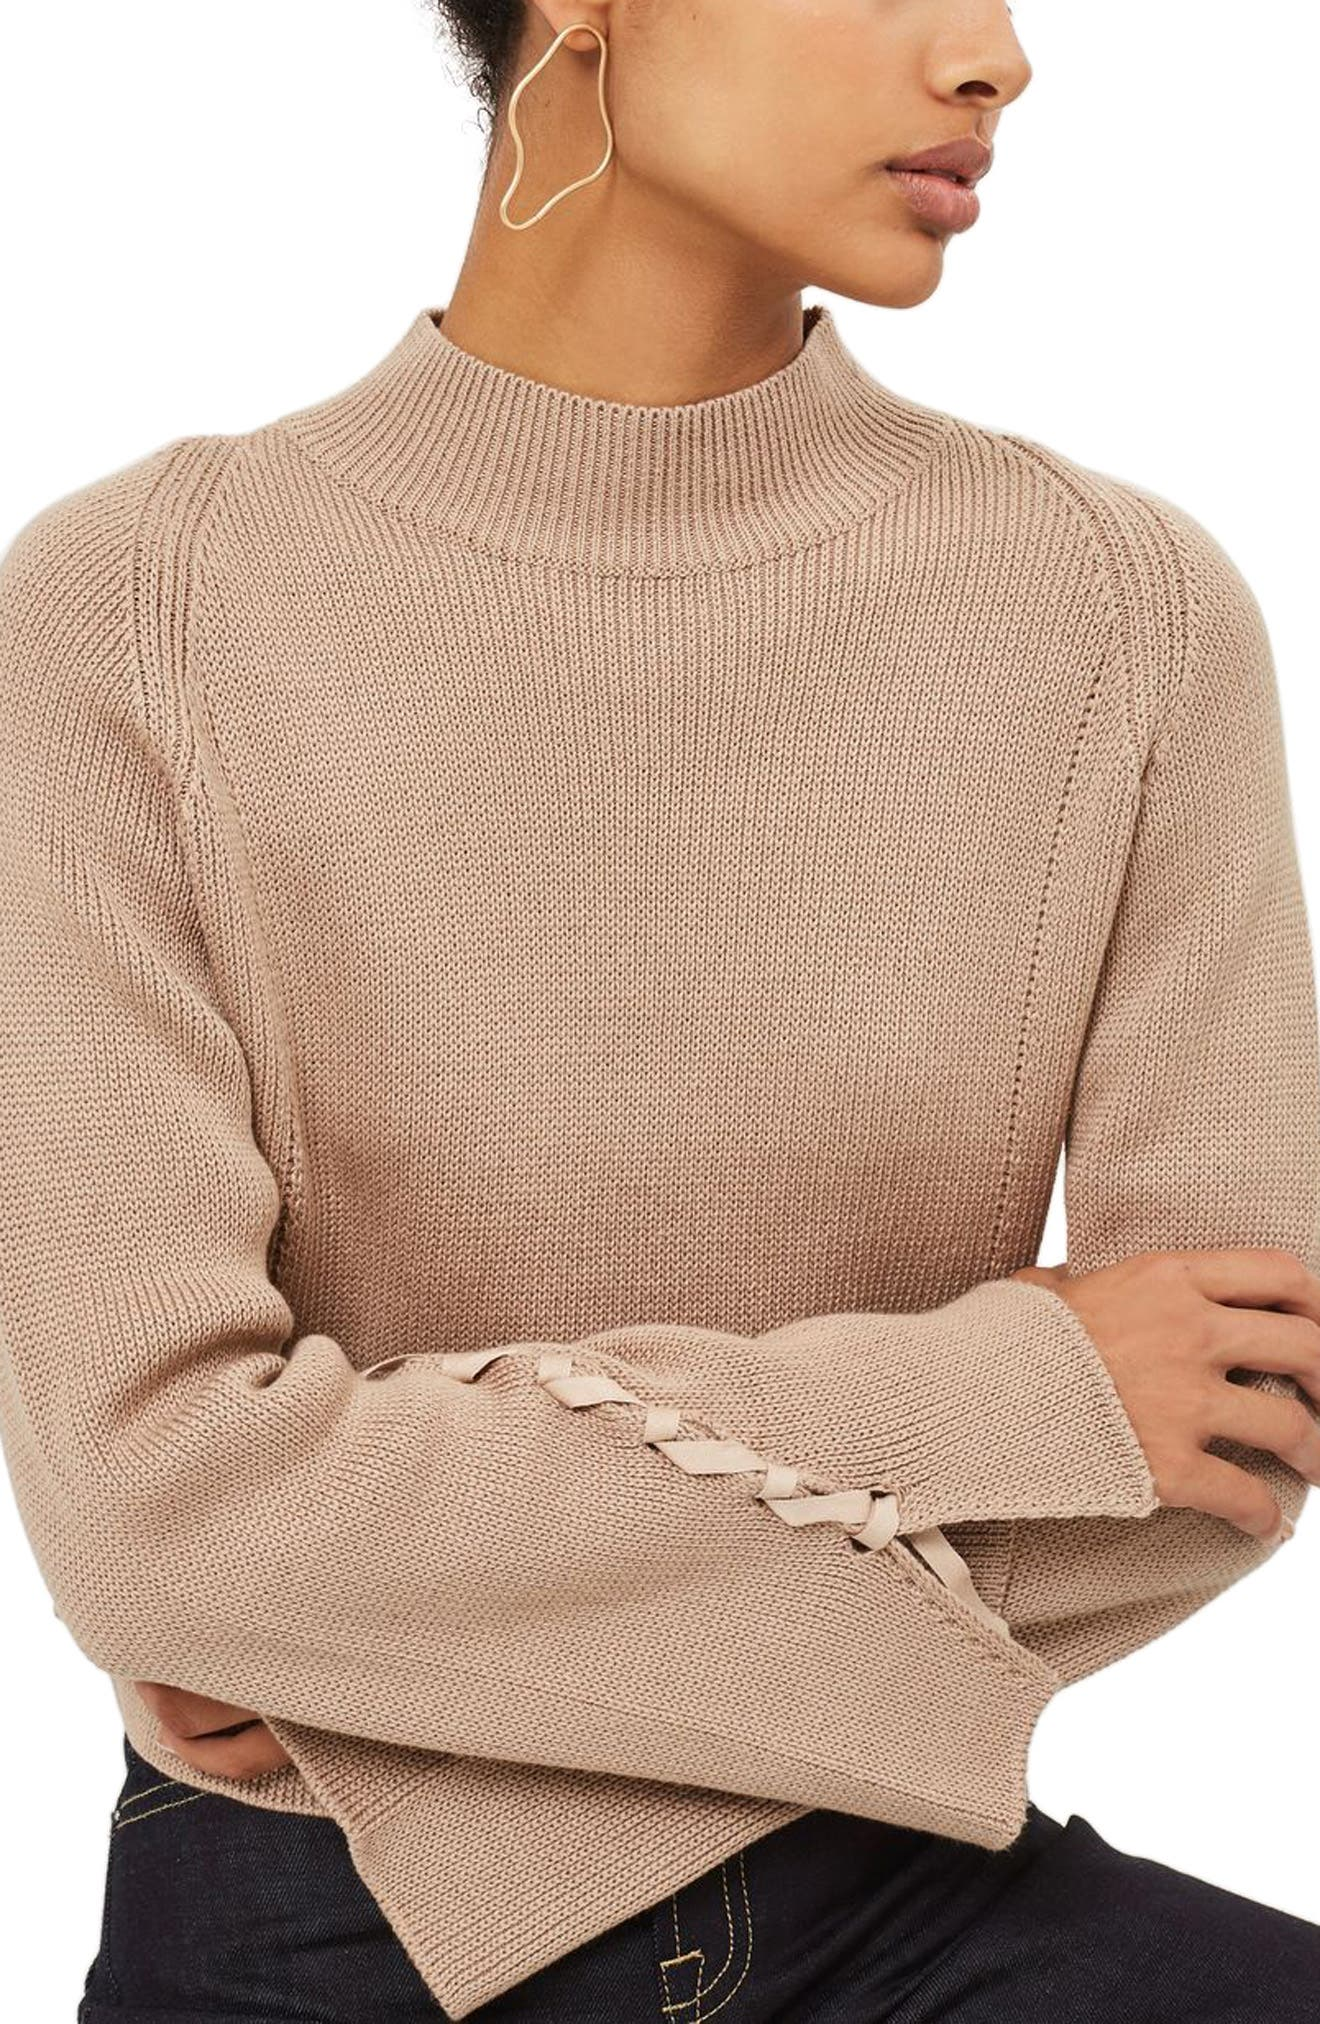 Lace Sleeve Funnel Neck Sweater,                             Main thumbnail 1, color,                             Mink